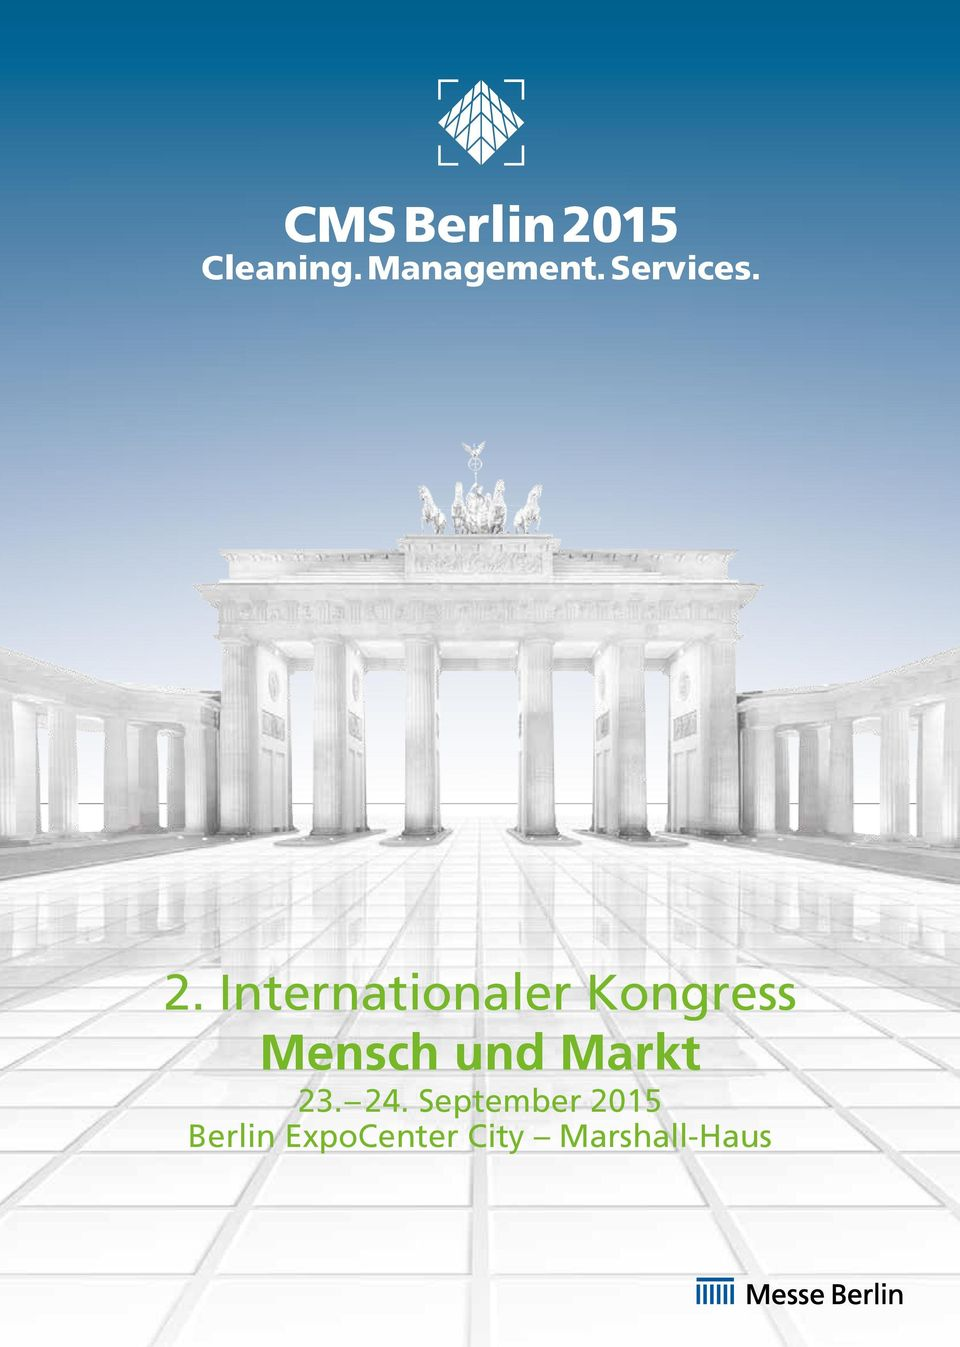 Internationaler Kongress Mensch und